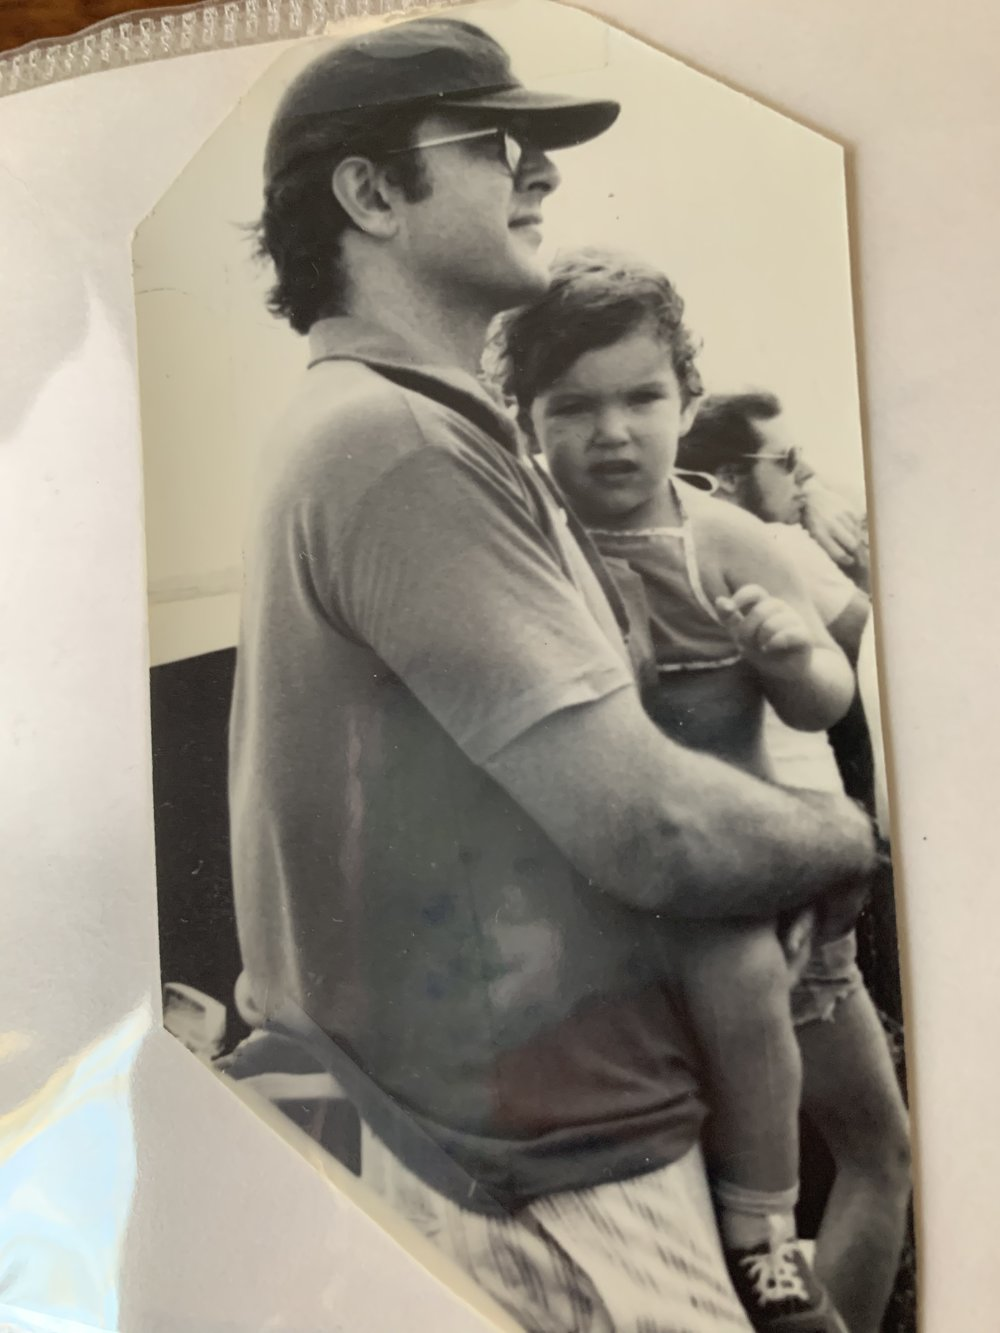 My dad and me, circa 1978.